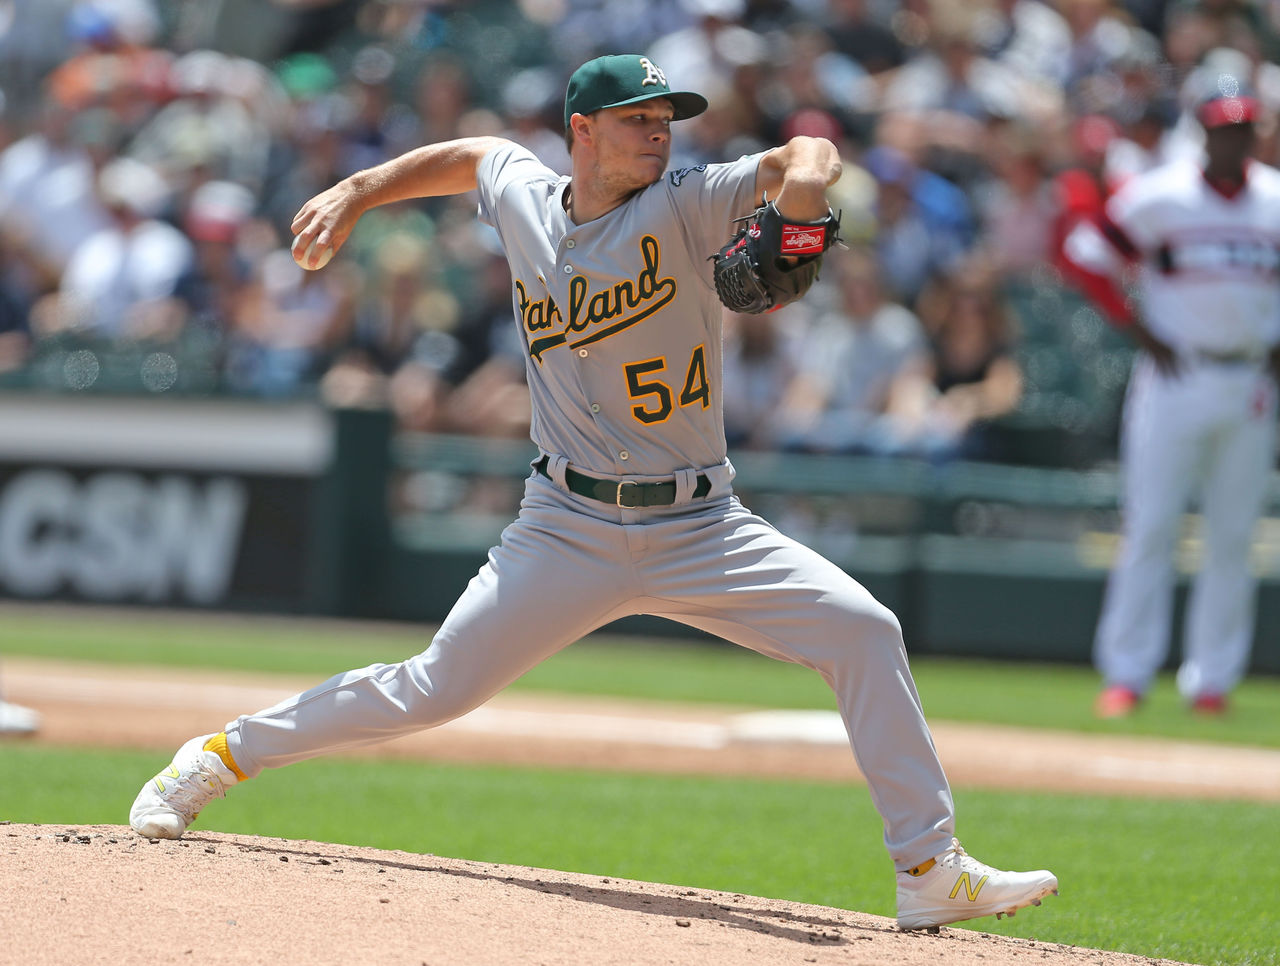 Cropped 2017 06 25t184755z 712303183 nocid rtrmadp 3 mlb oakland athletics at chicago white sox